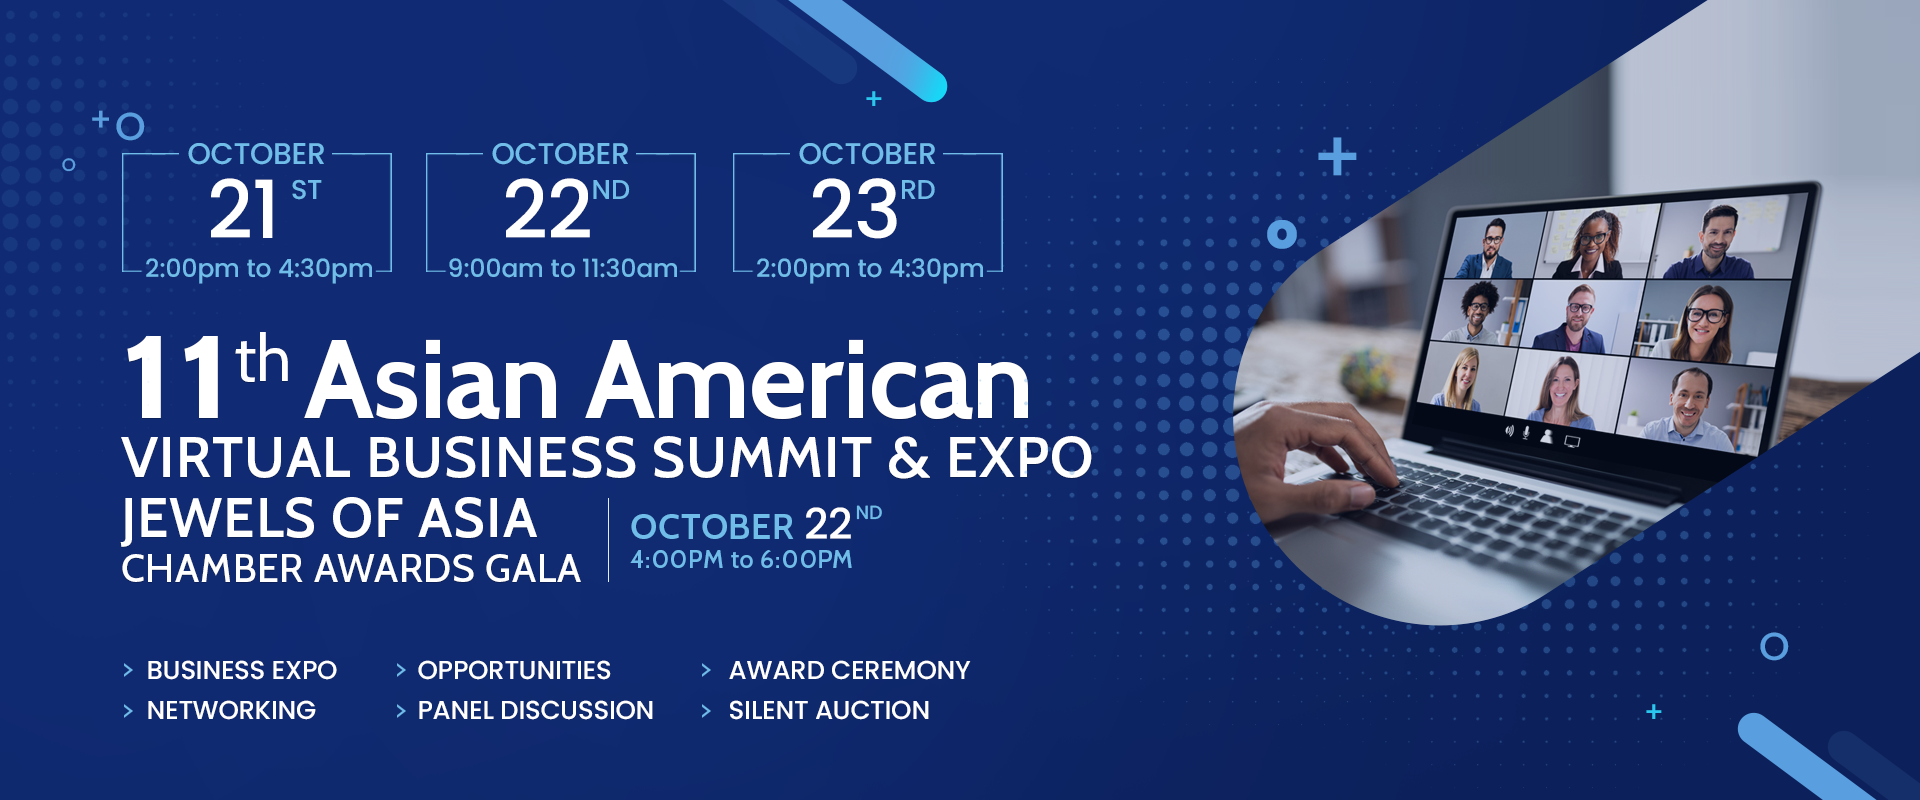 11th-Asian-American-Business-Summit&Expo